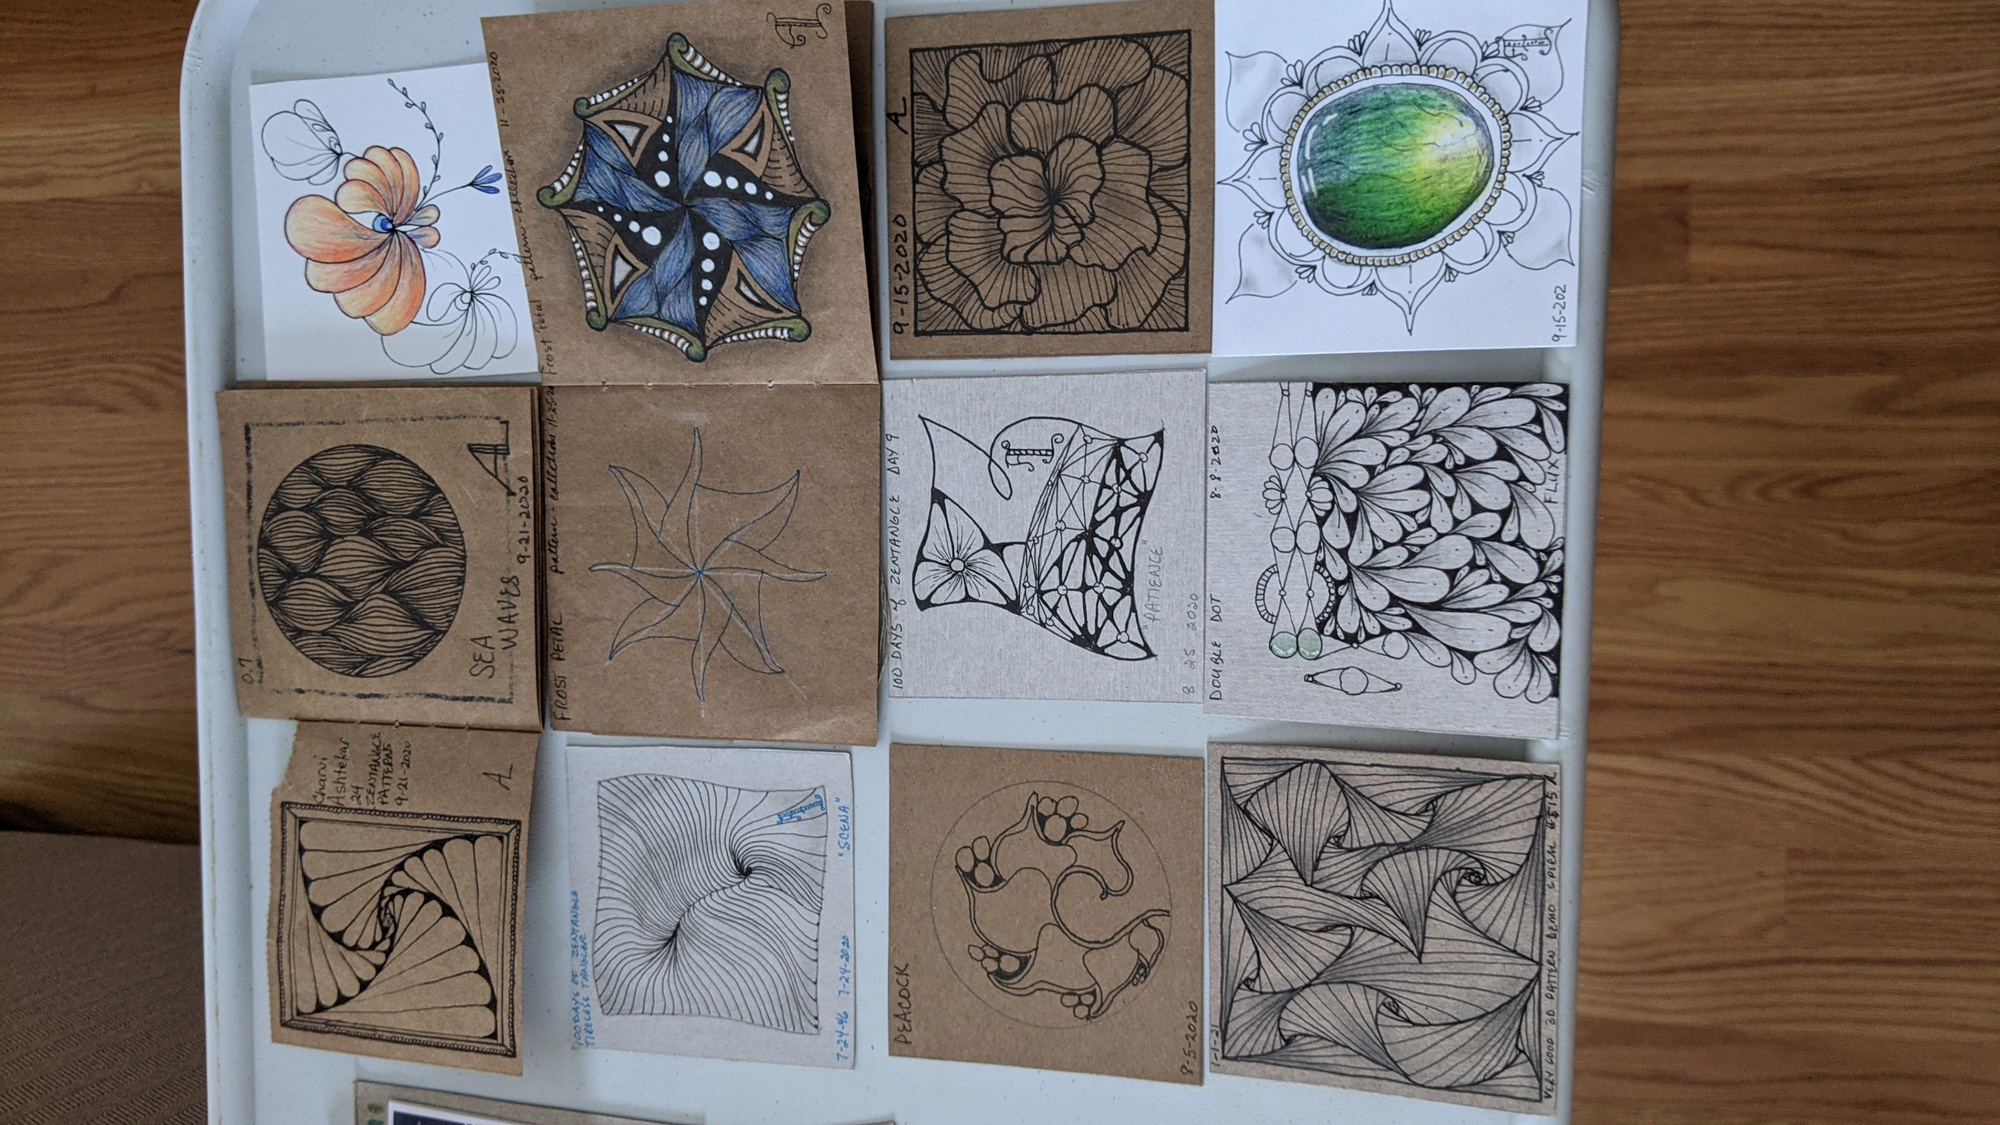 Ann Lopour learned the art of zen doodling in a virtual class, creating the intricate drawings pictured.